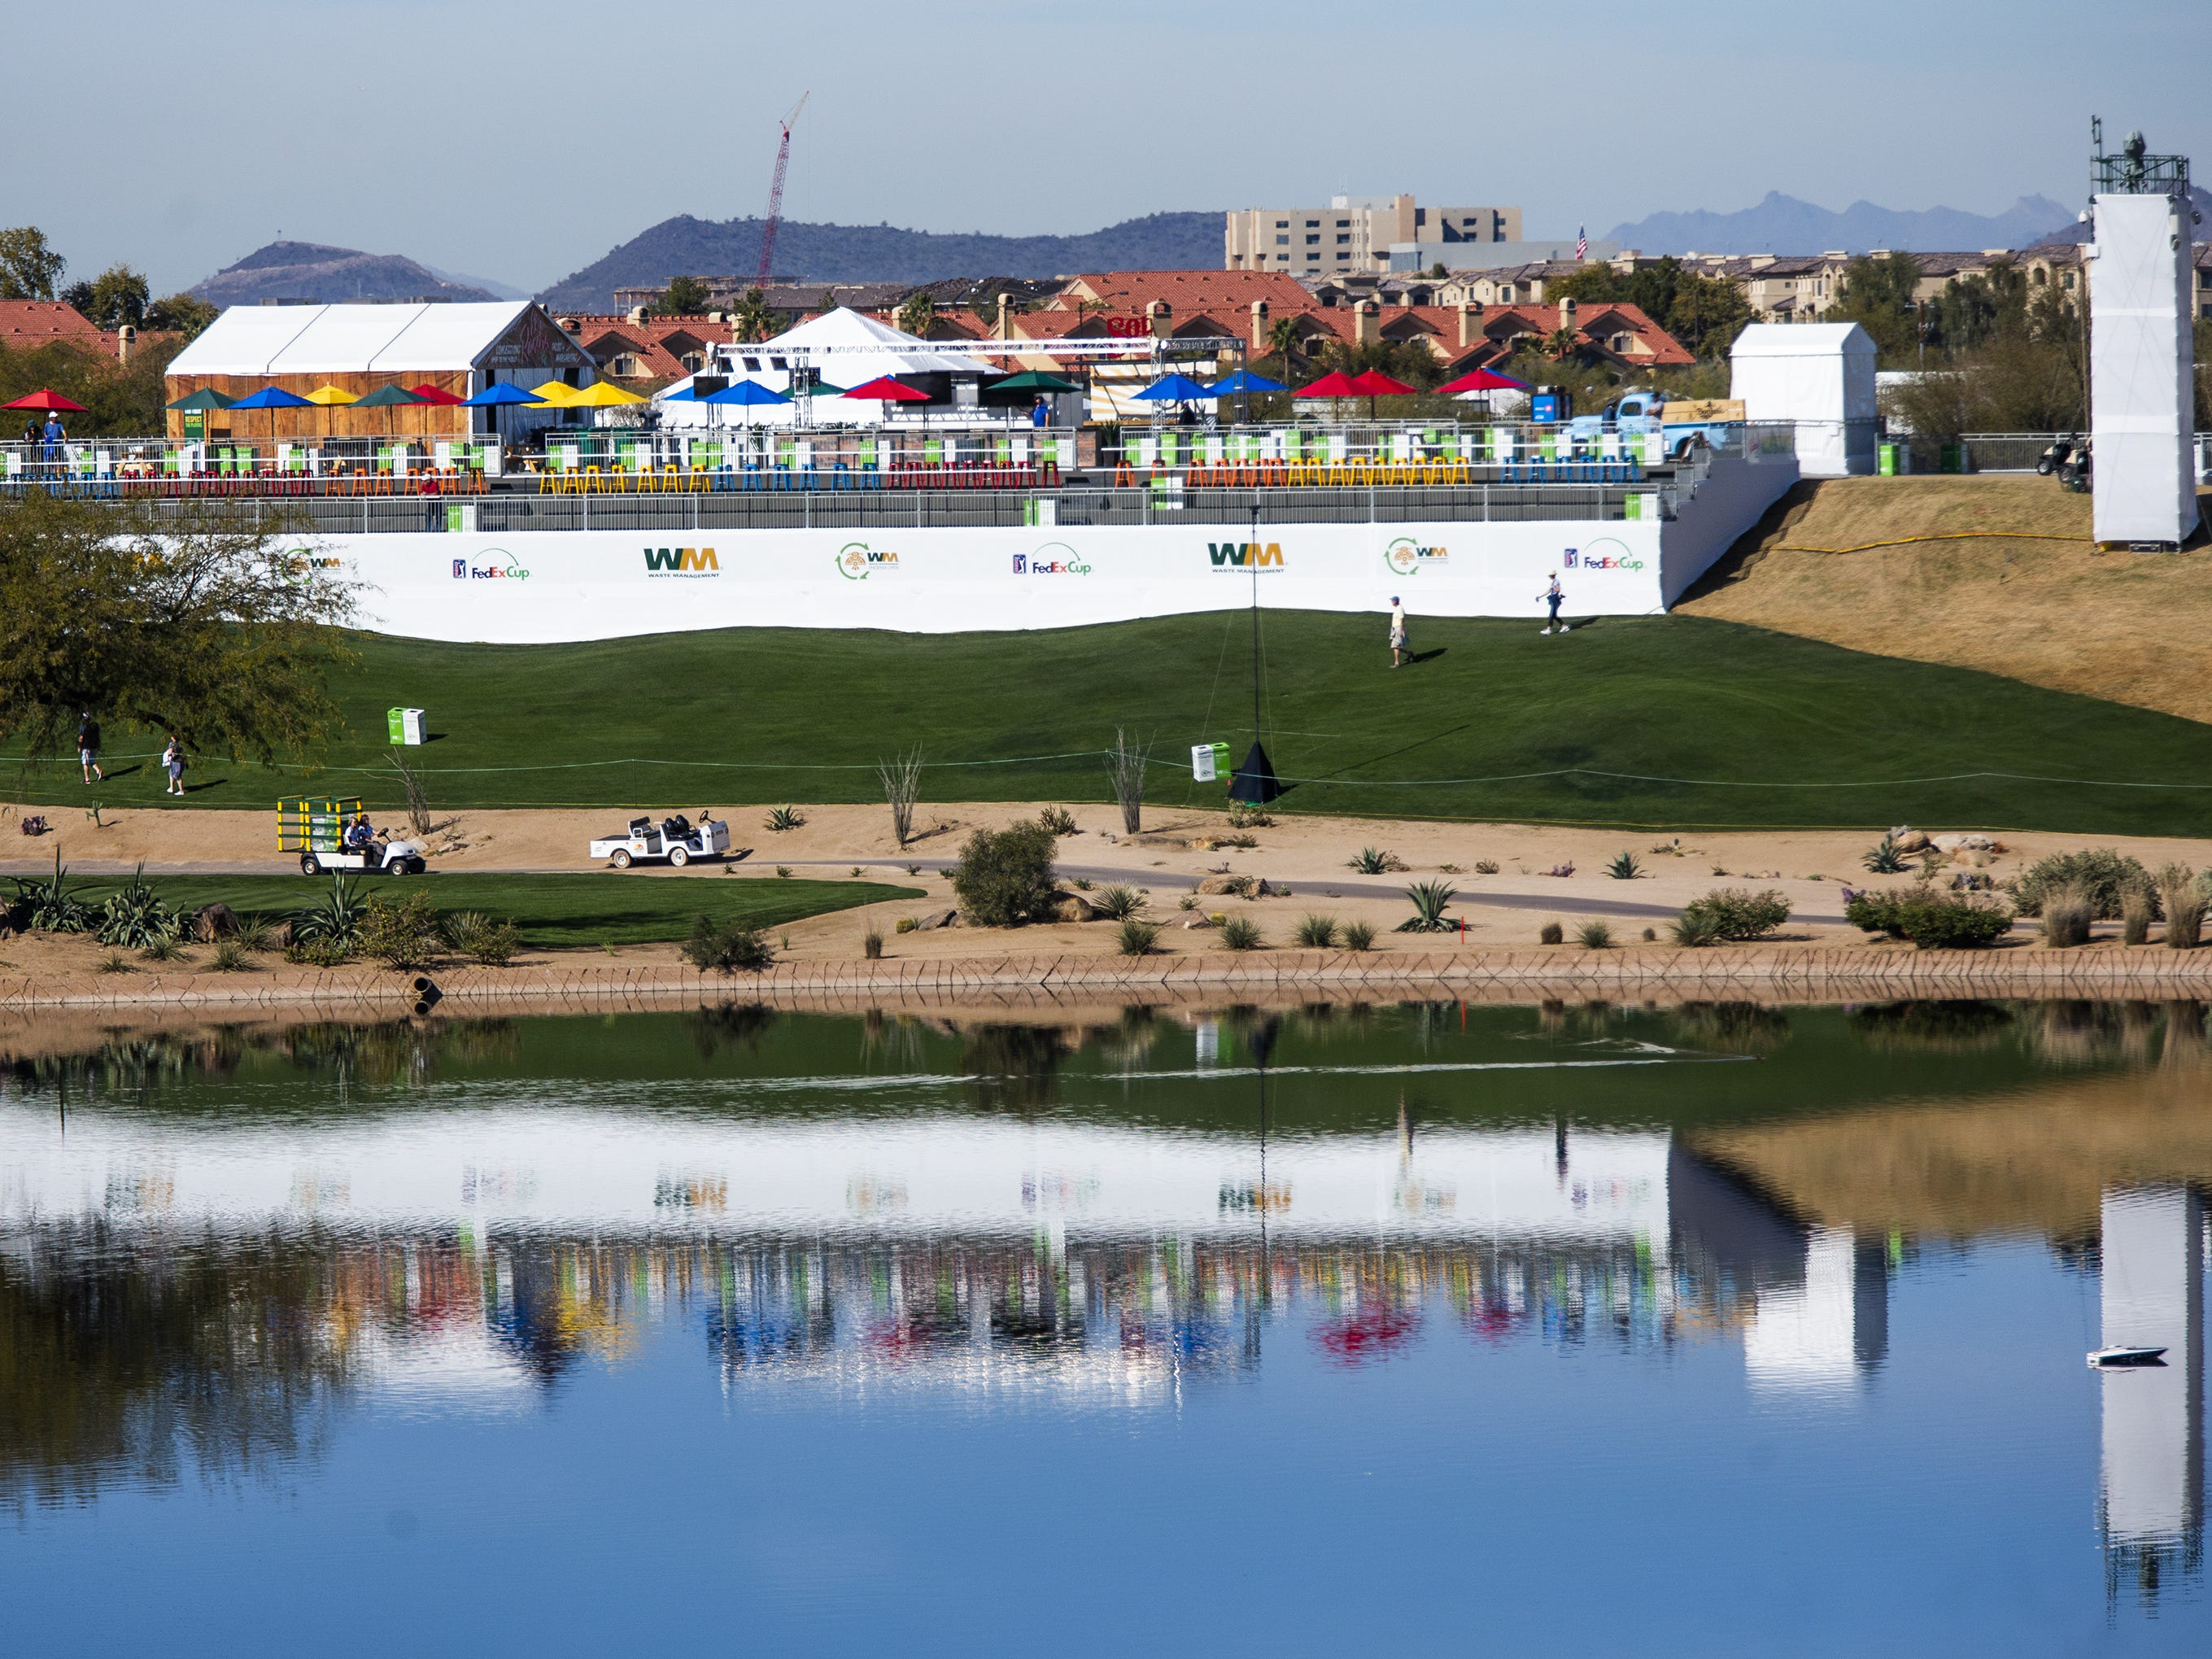 Grandstands near the 12th hole are reflected in a pond during the Kadima.Ventures Pro-Am at the Waste Management Phoenix Open at the TPC Scottsdale, Monday, January 28, 2019.